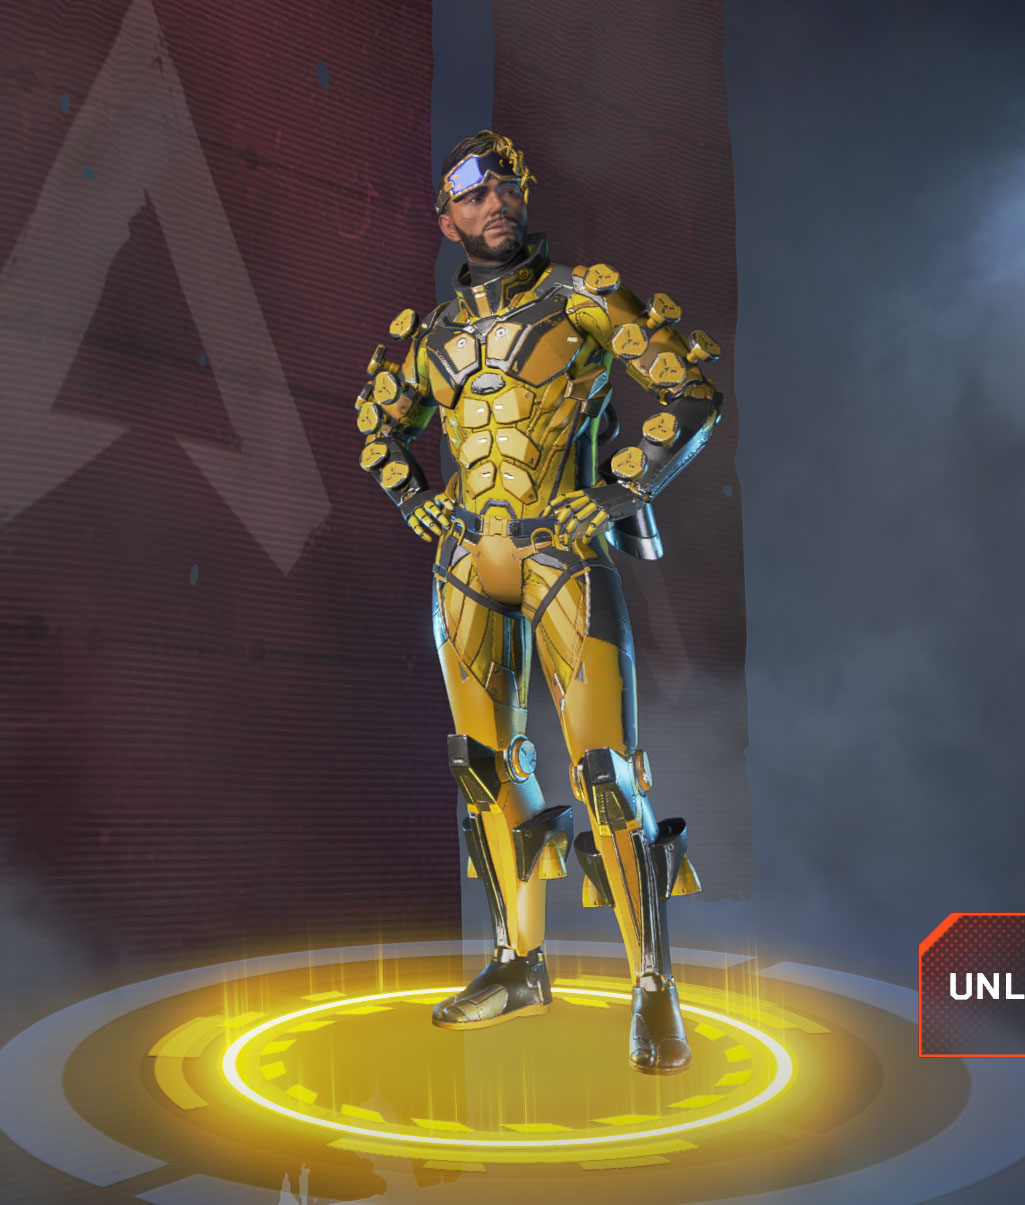 Apex Legends Mirage Guide – Tips, Abilities, Skins, & How-to Unlock